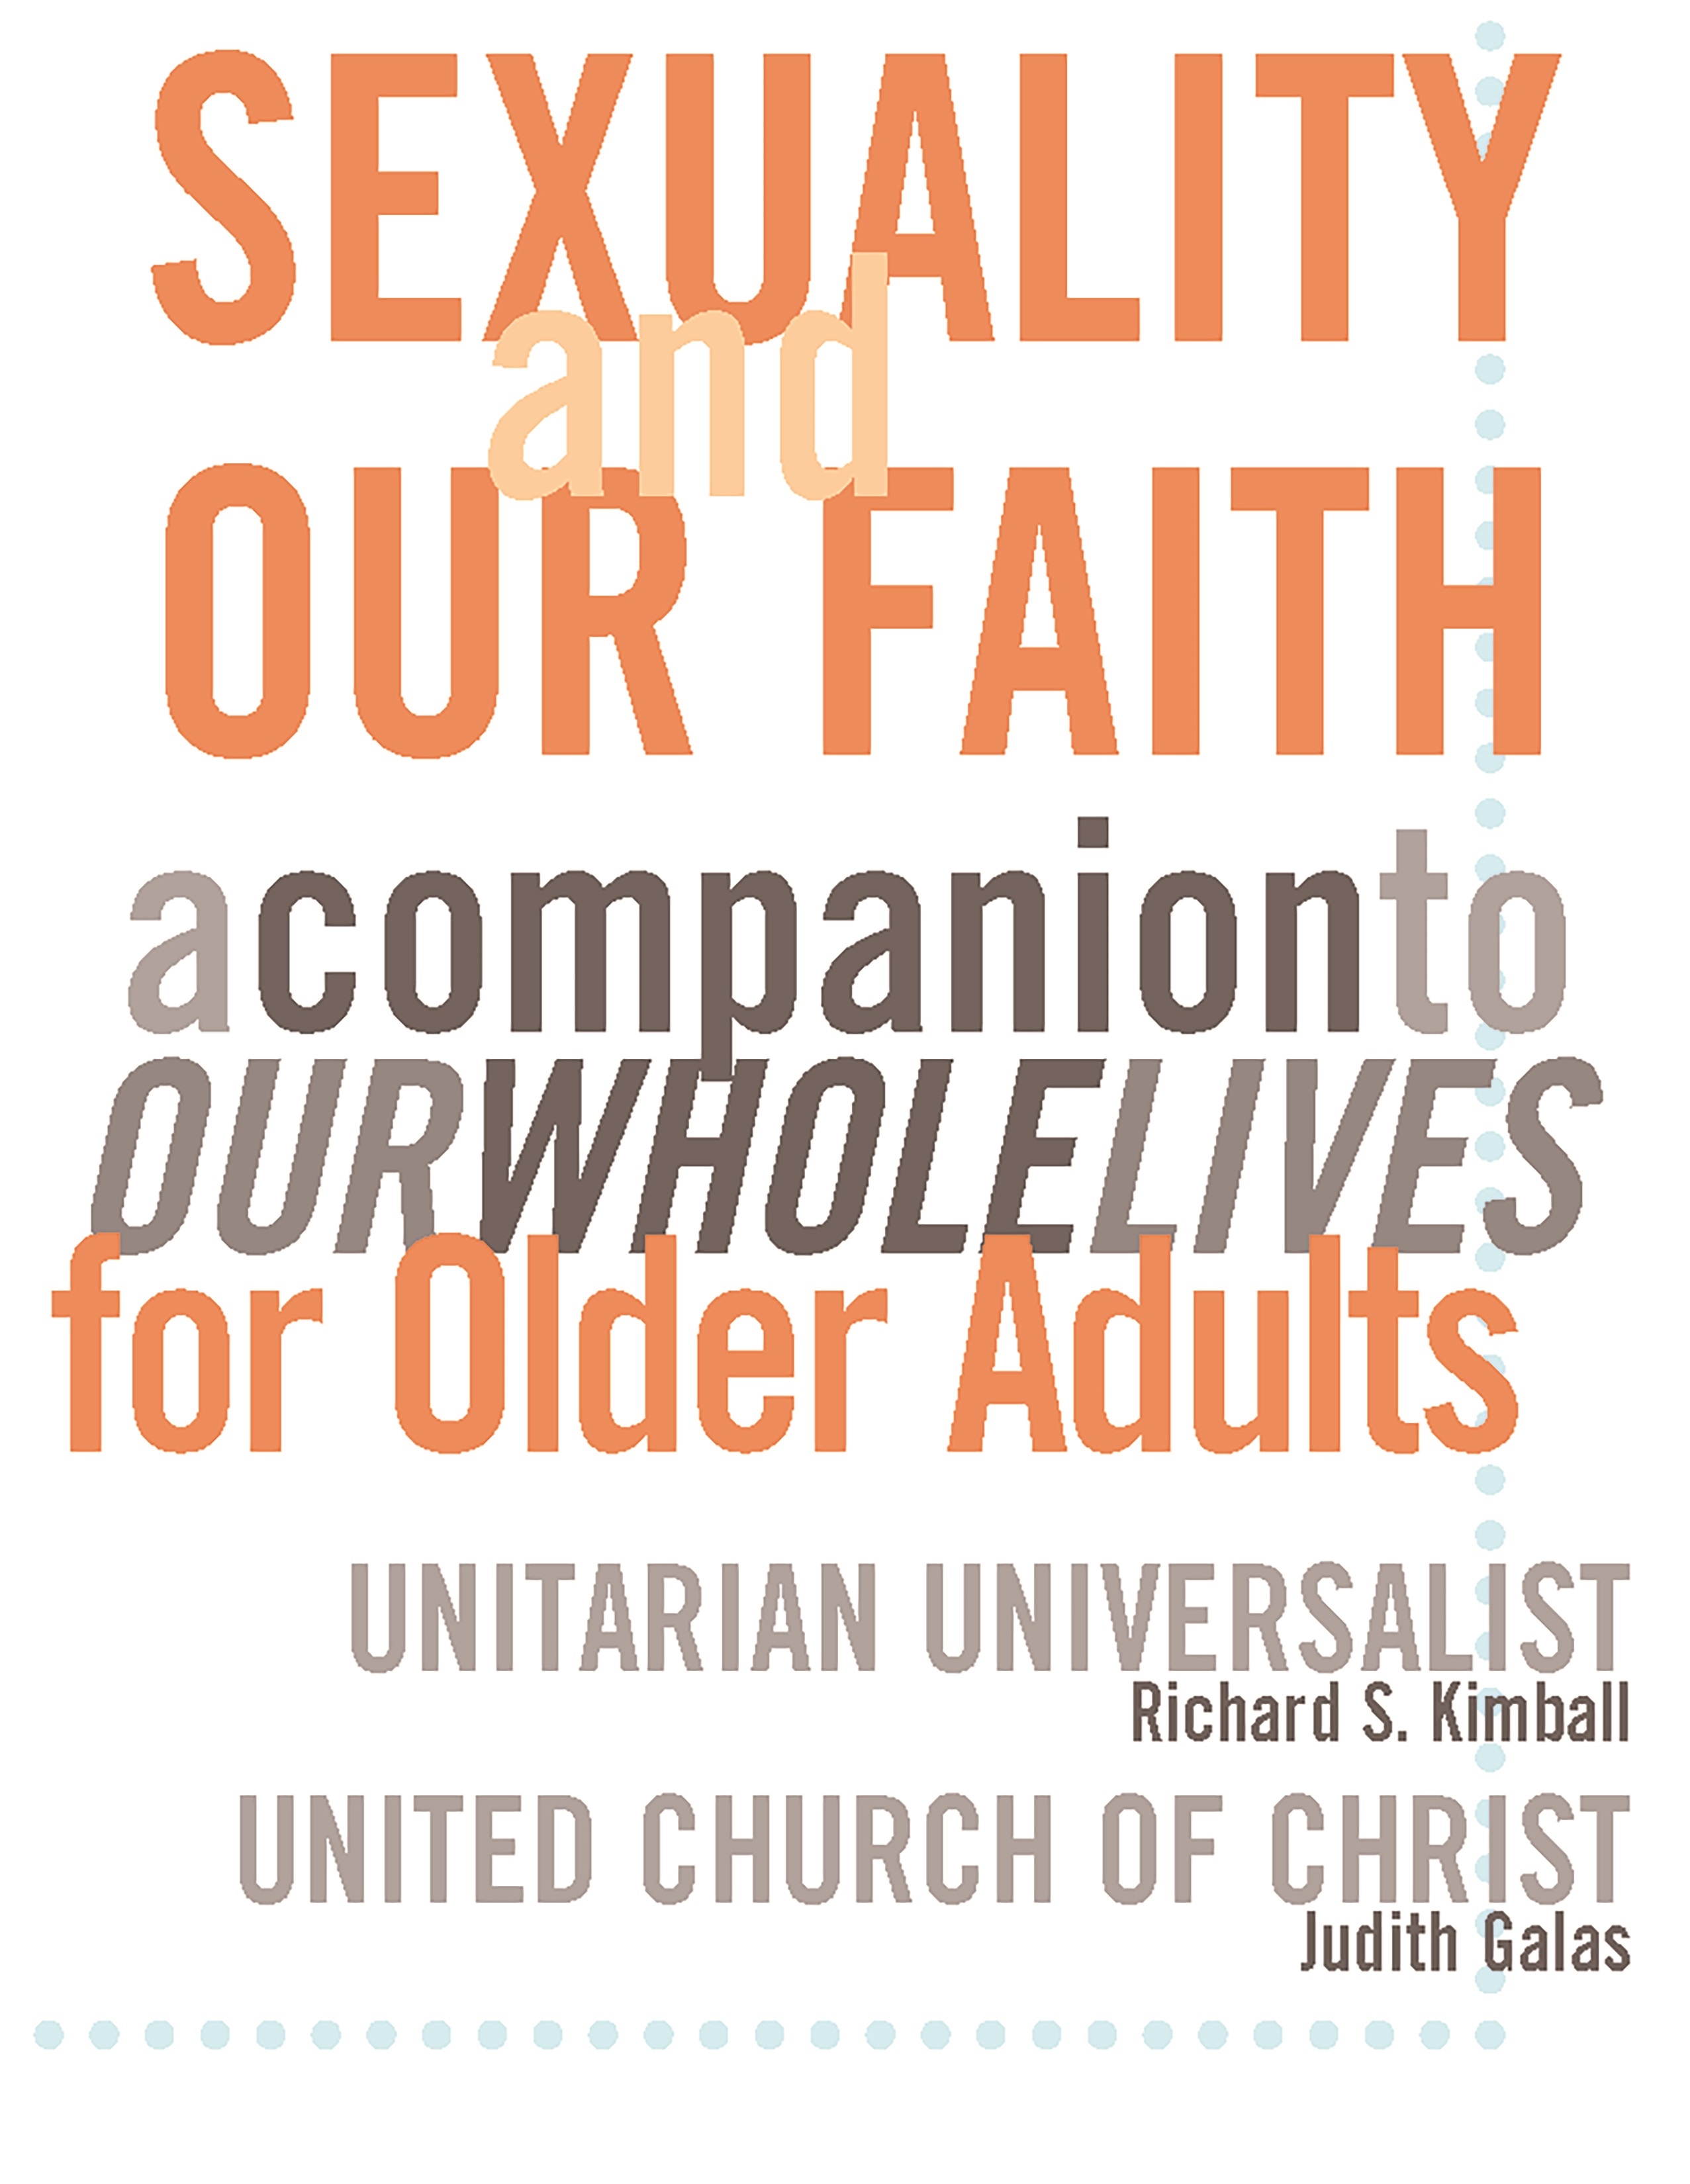 Sexuality and Our Faith older adults cover